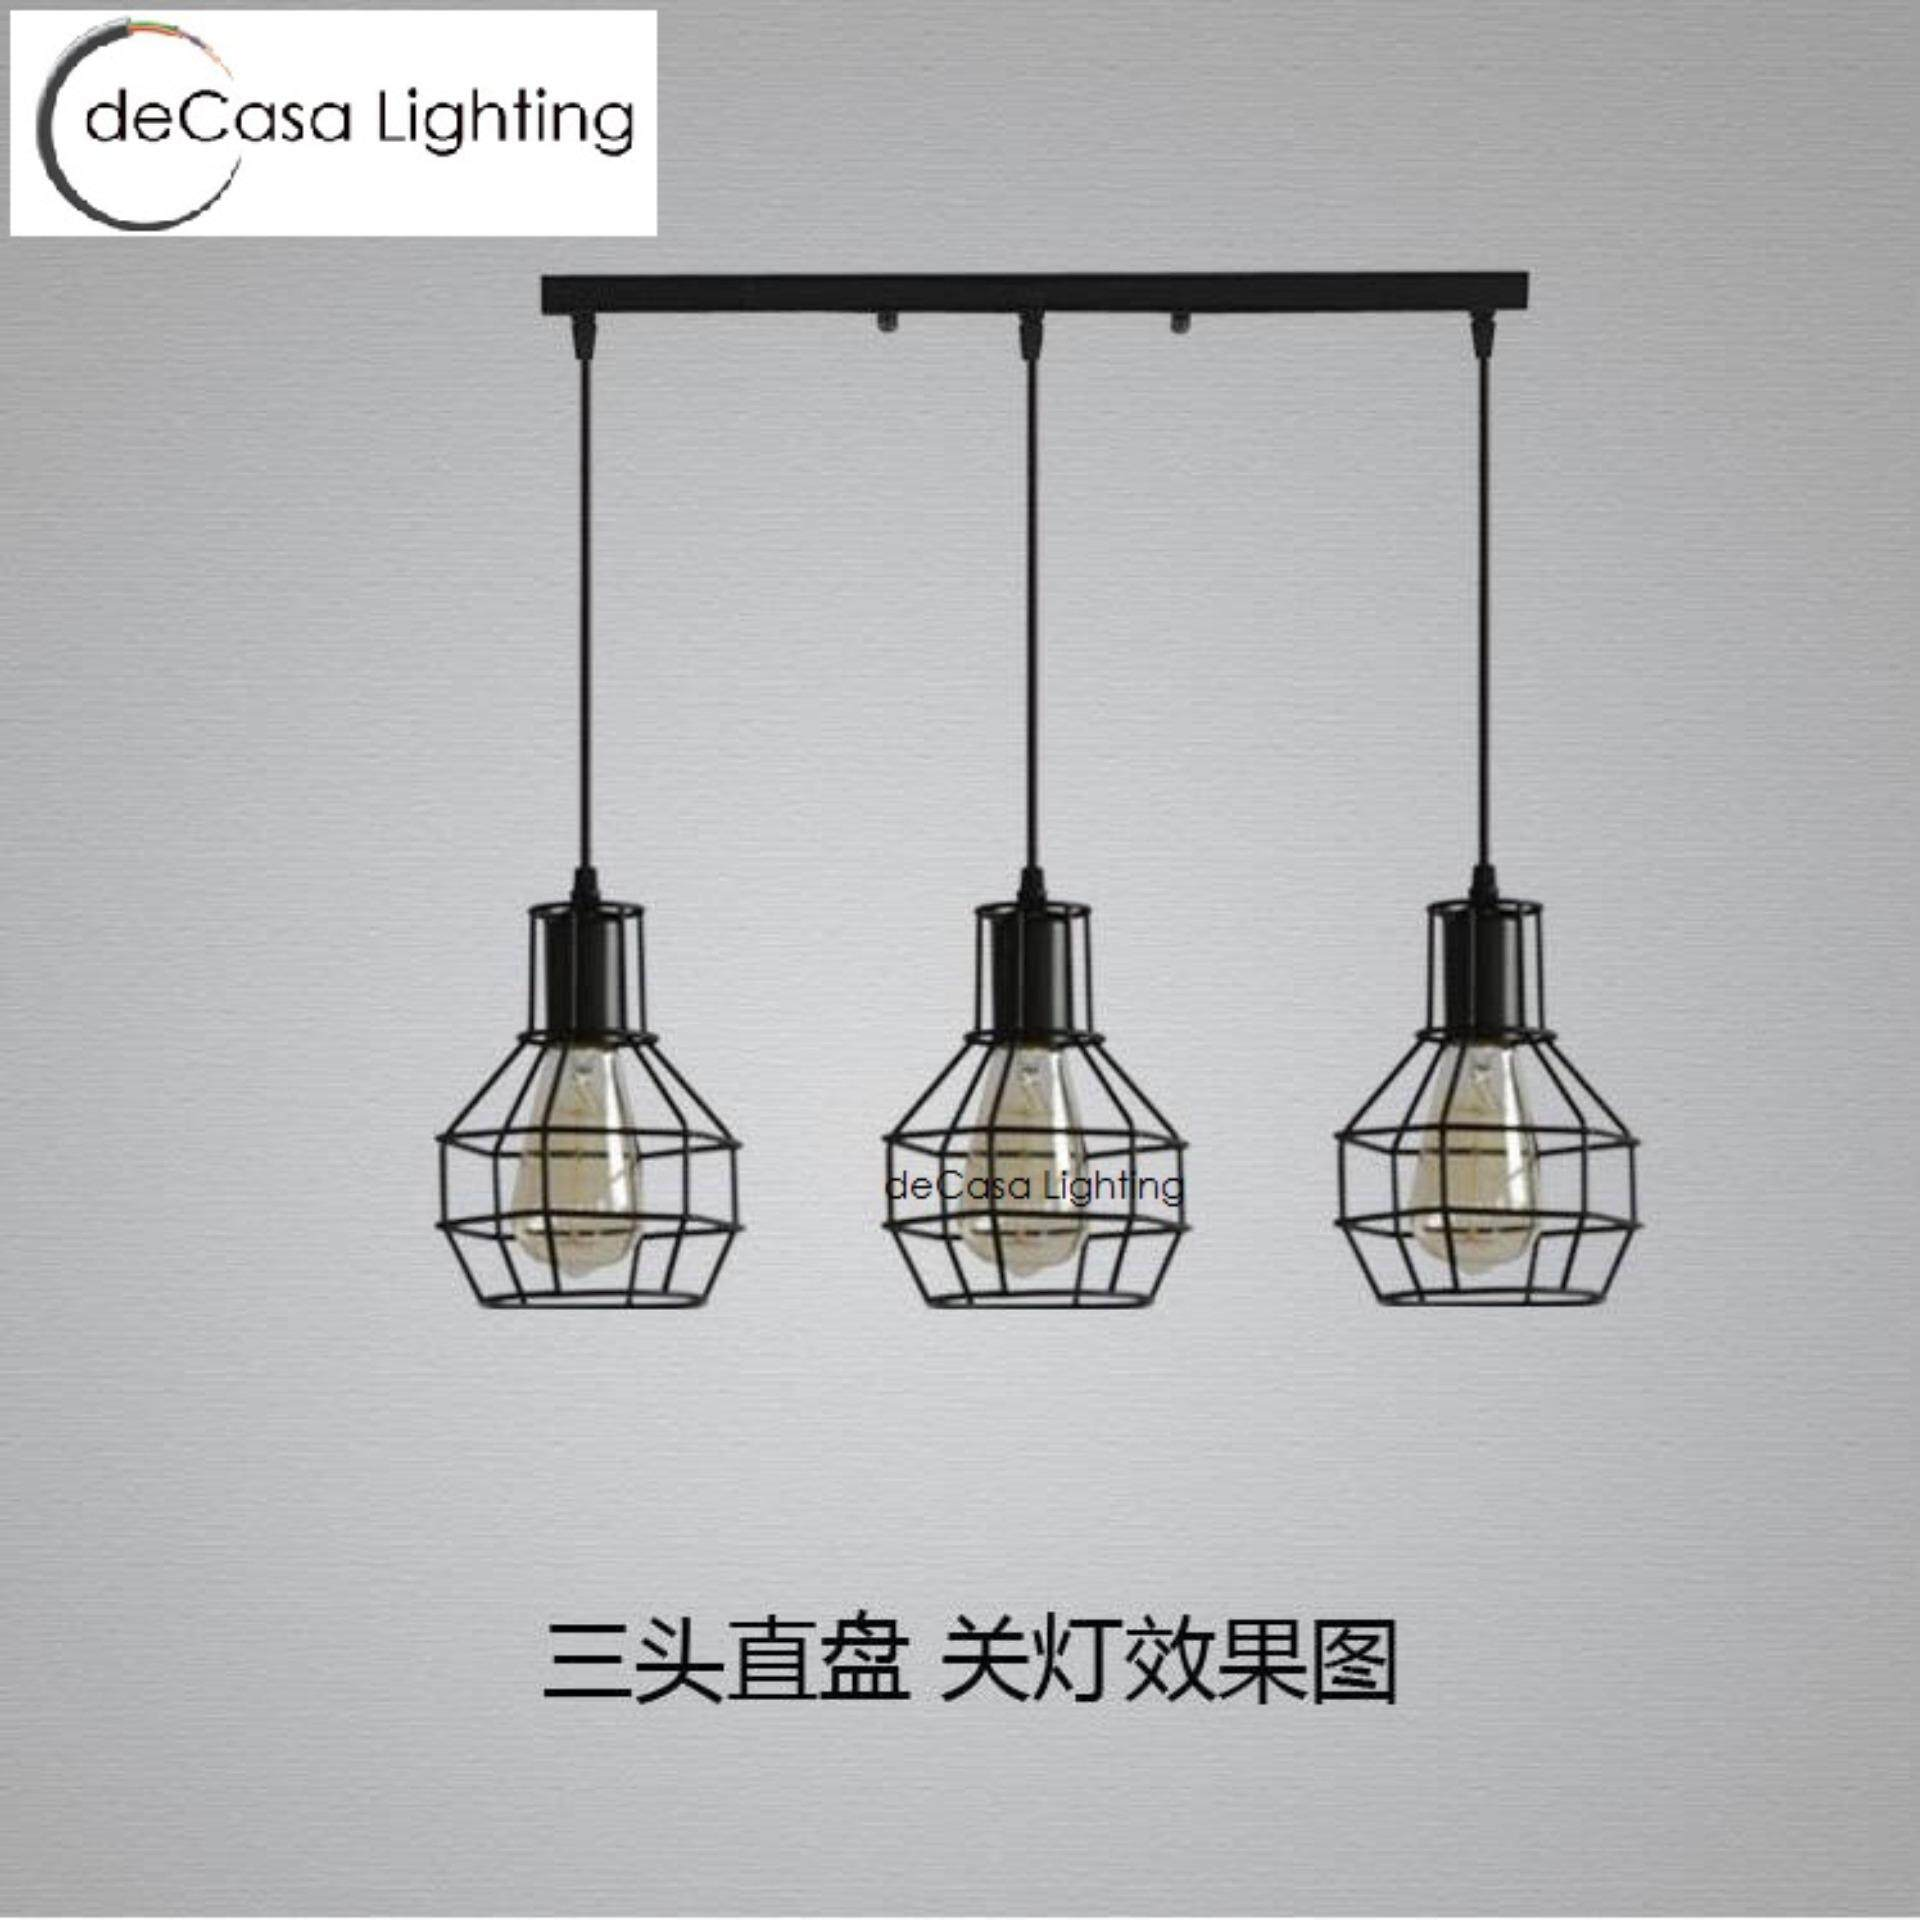 Ceiling lights pendants light long base decasa lighting designer decorative ceiling lights pendants light set of 3black loft designer decorative